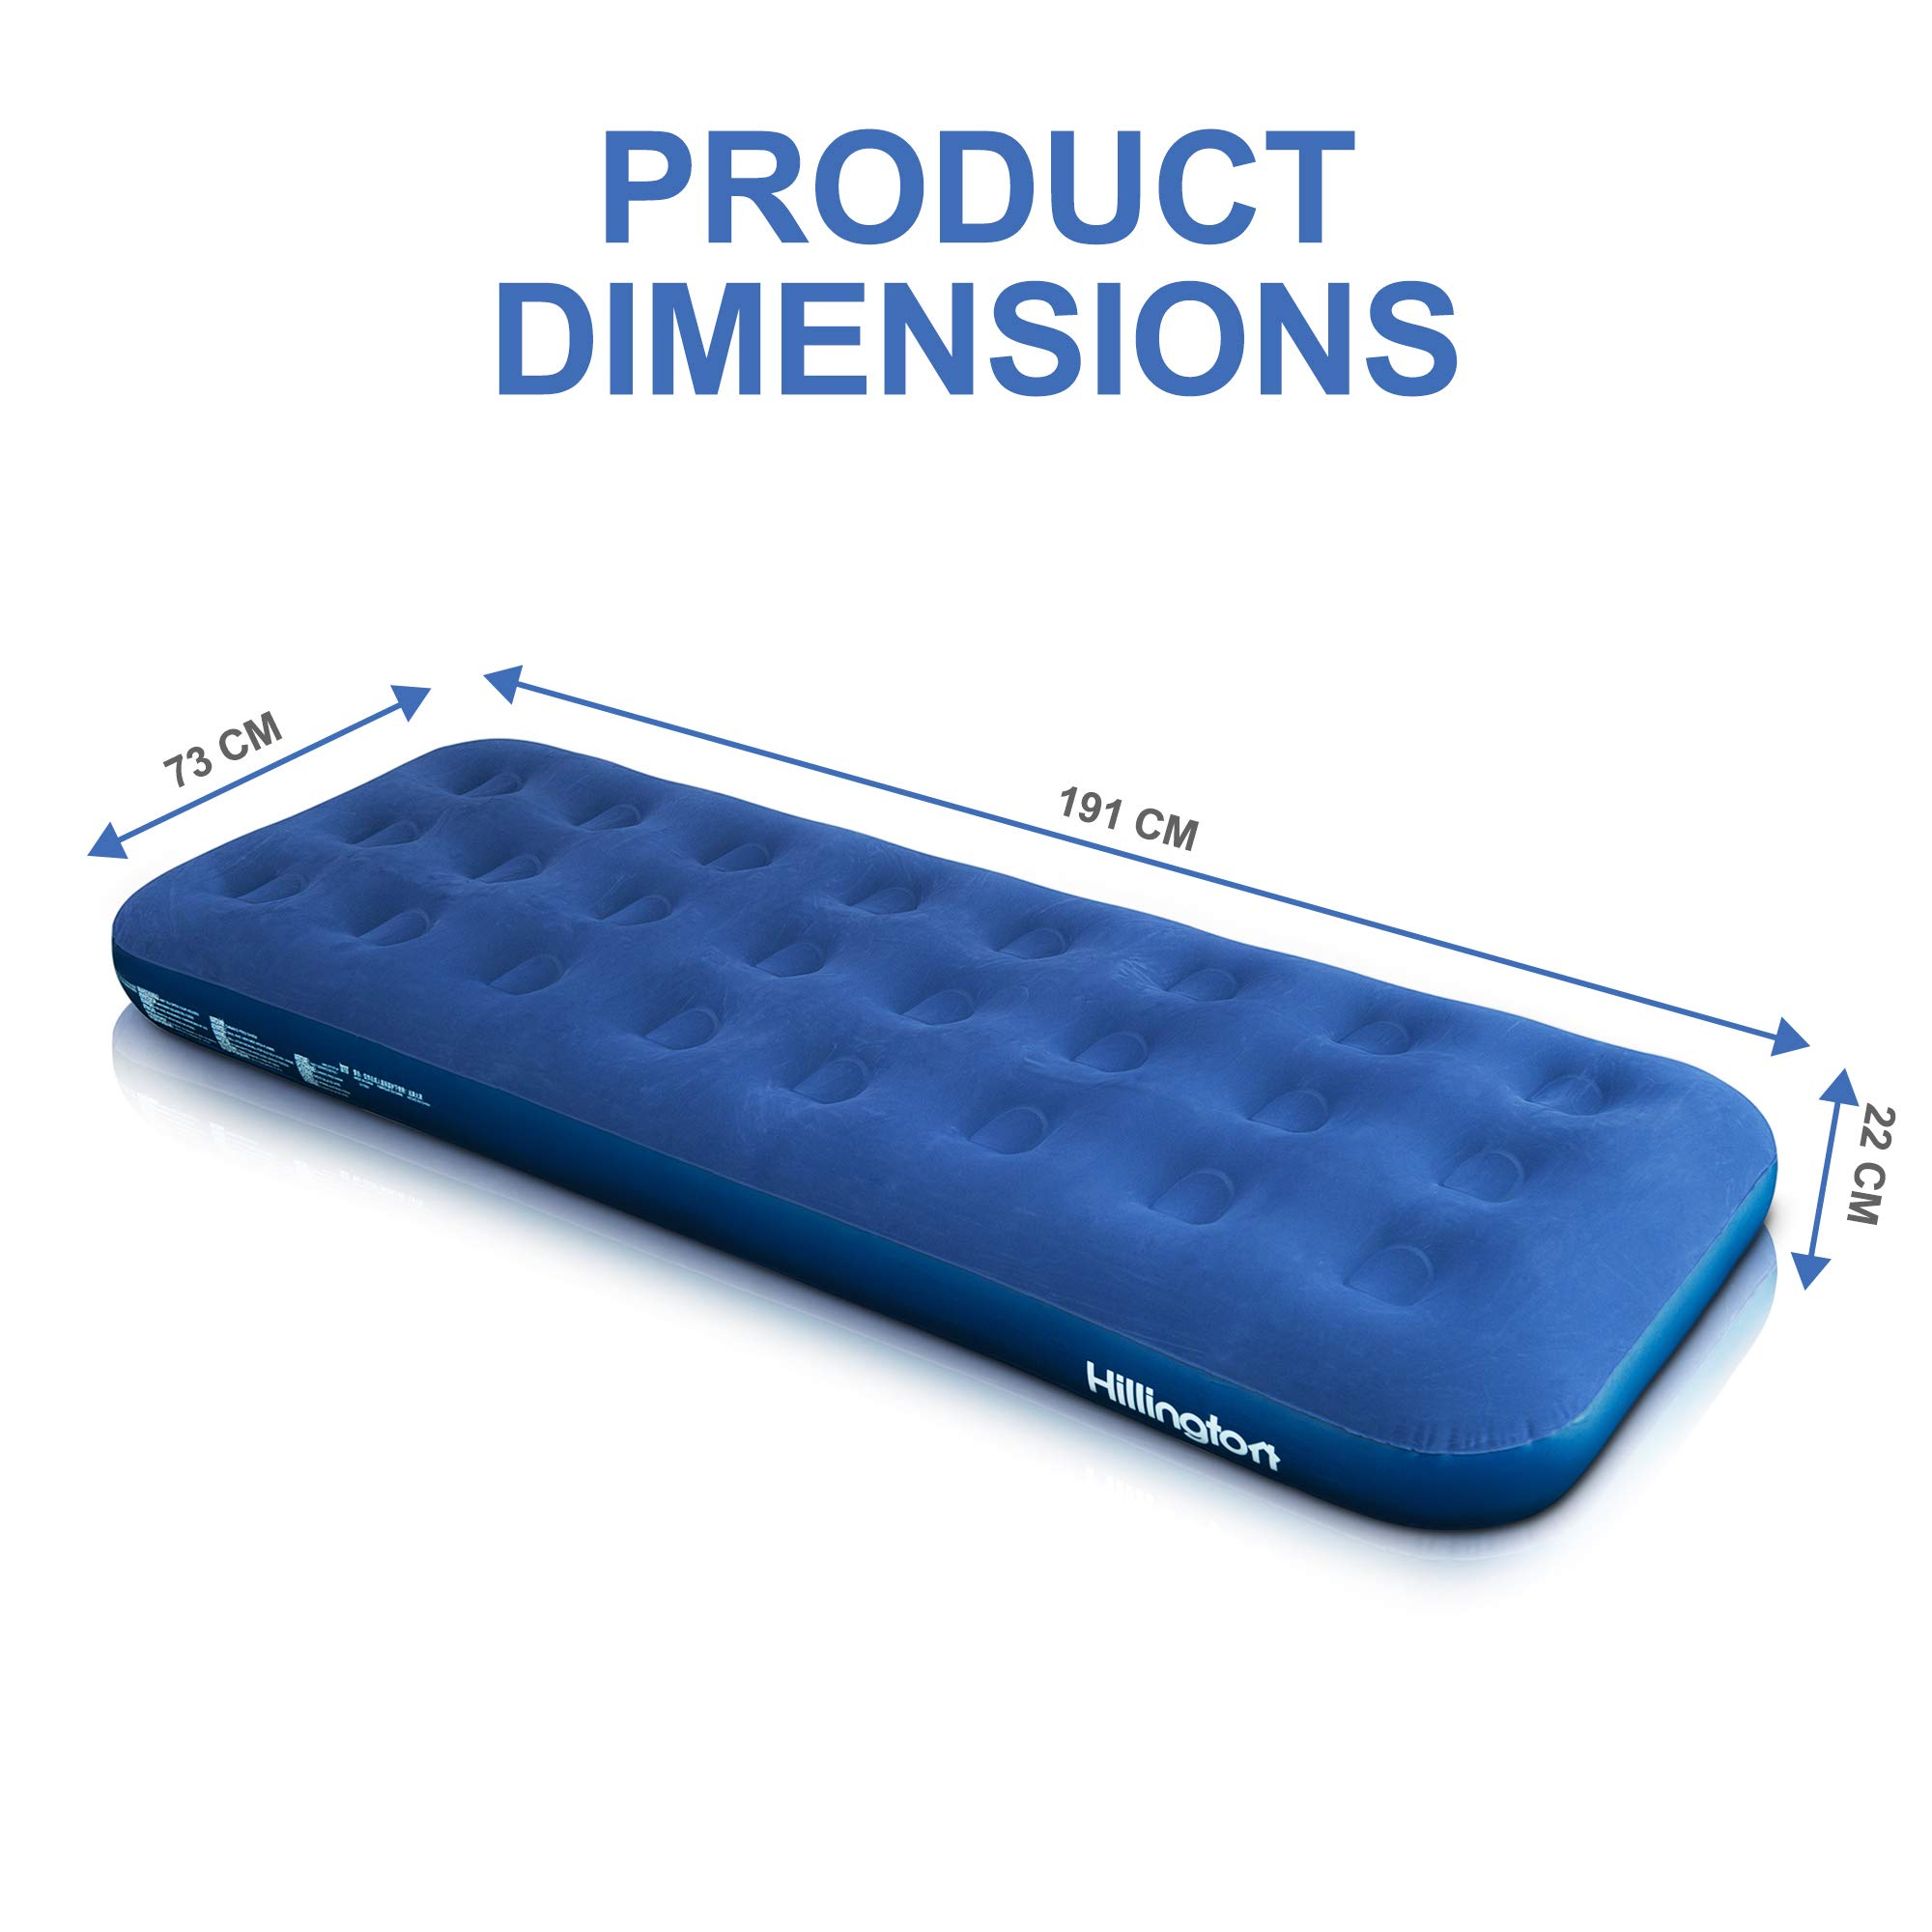 FiNeWaY INFLATABLE FLOCKED AIR BED AIRBED MATTRESS CAMPING INDOOR OUTDOOR